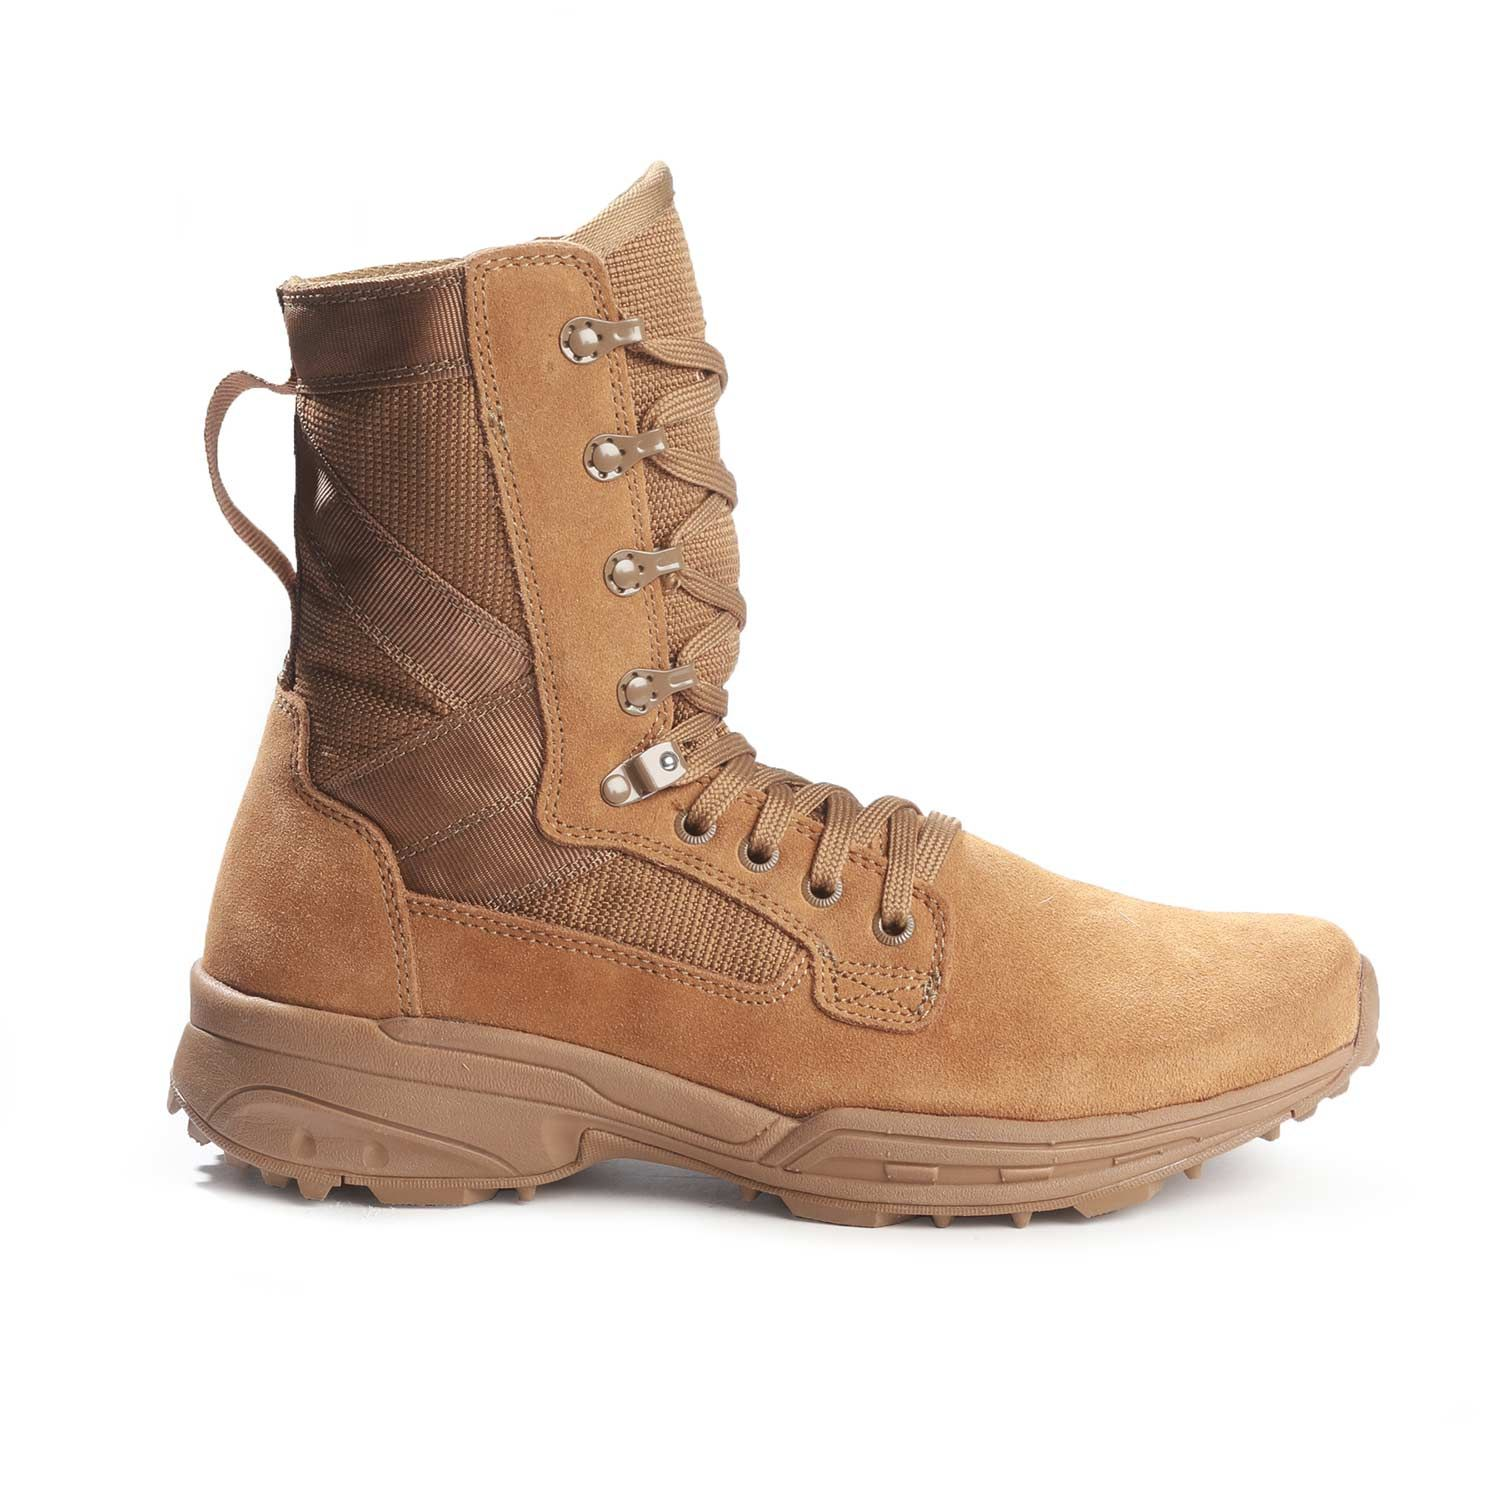 Garmont T8 Nfs Boot Ocp Coyote Military Boots Army Boots In 2020 Boots Army Boots Military Boots